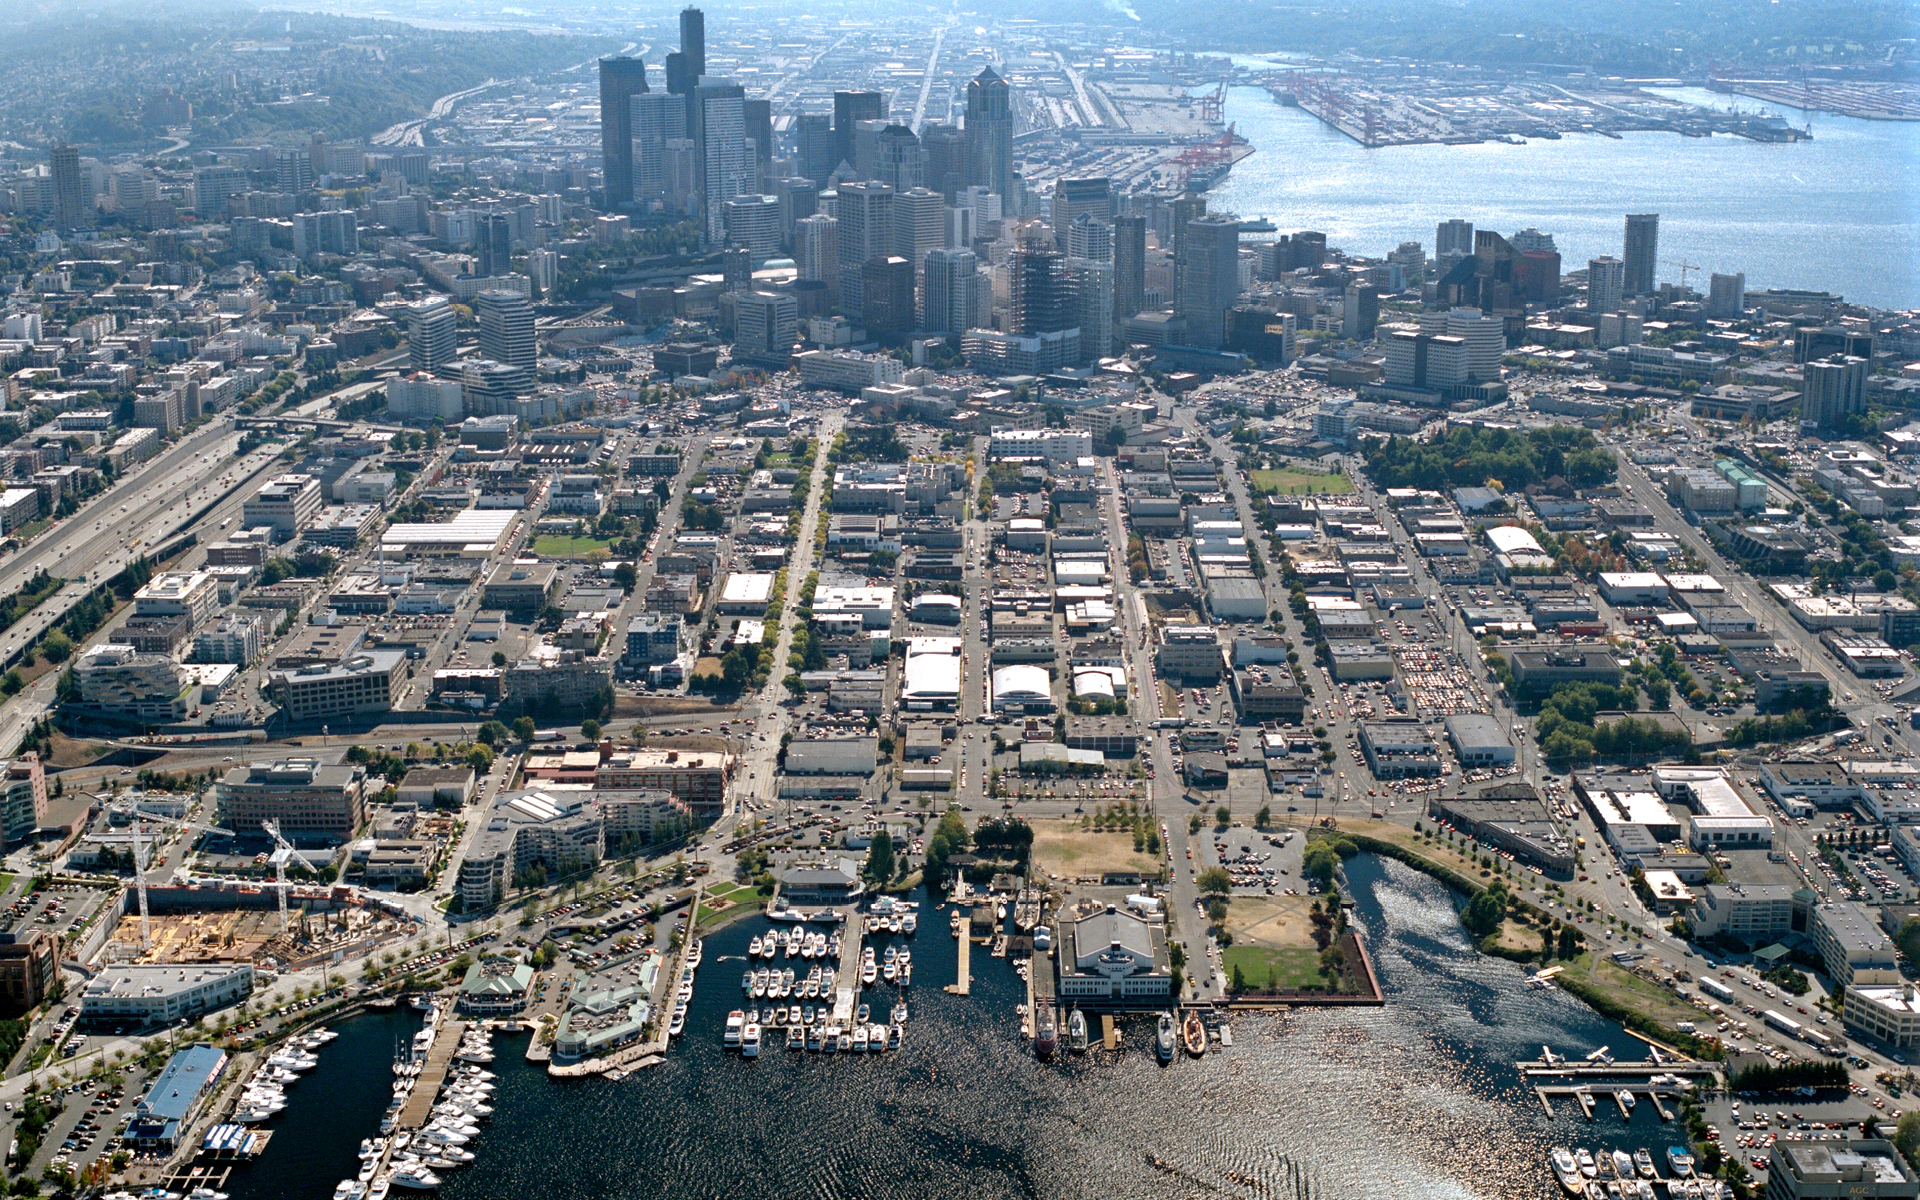 Aerial Image of South Lake Union in 2002